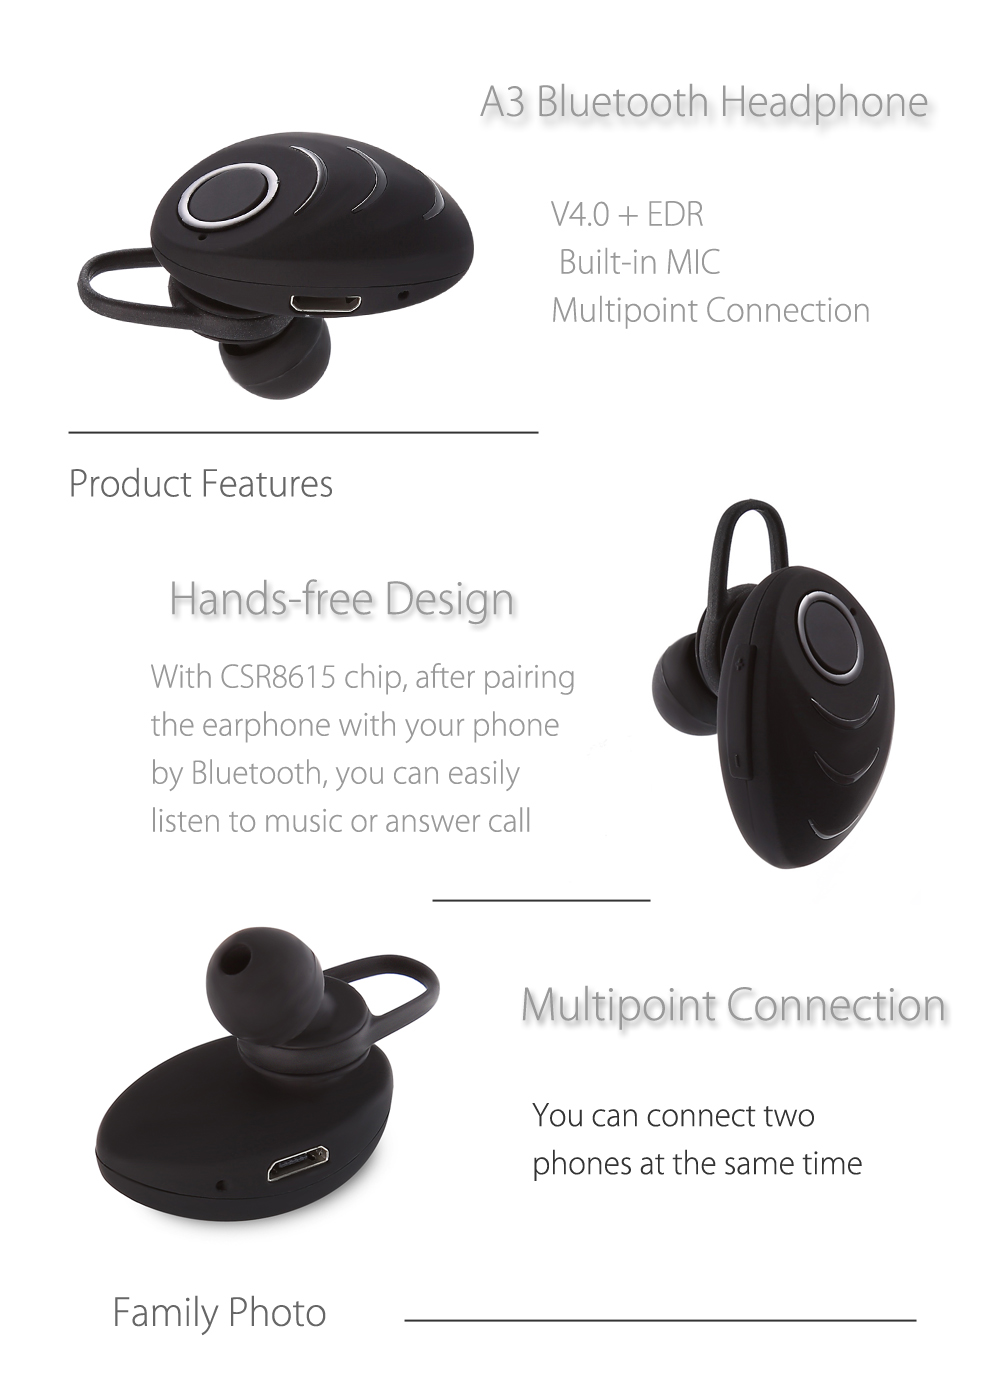 A3 Bluetooth Headphone Multipoint Connection 984 Free Shipping Mono Headset Microphone Jack Wiring Package Contents 1 X Earphone Usb Cable Pair Of Earring 2 Earbuds English User Manual